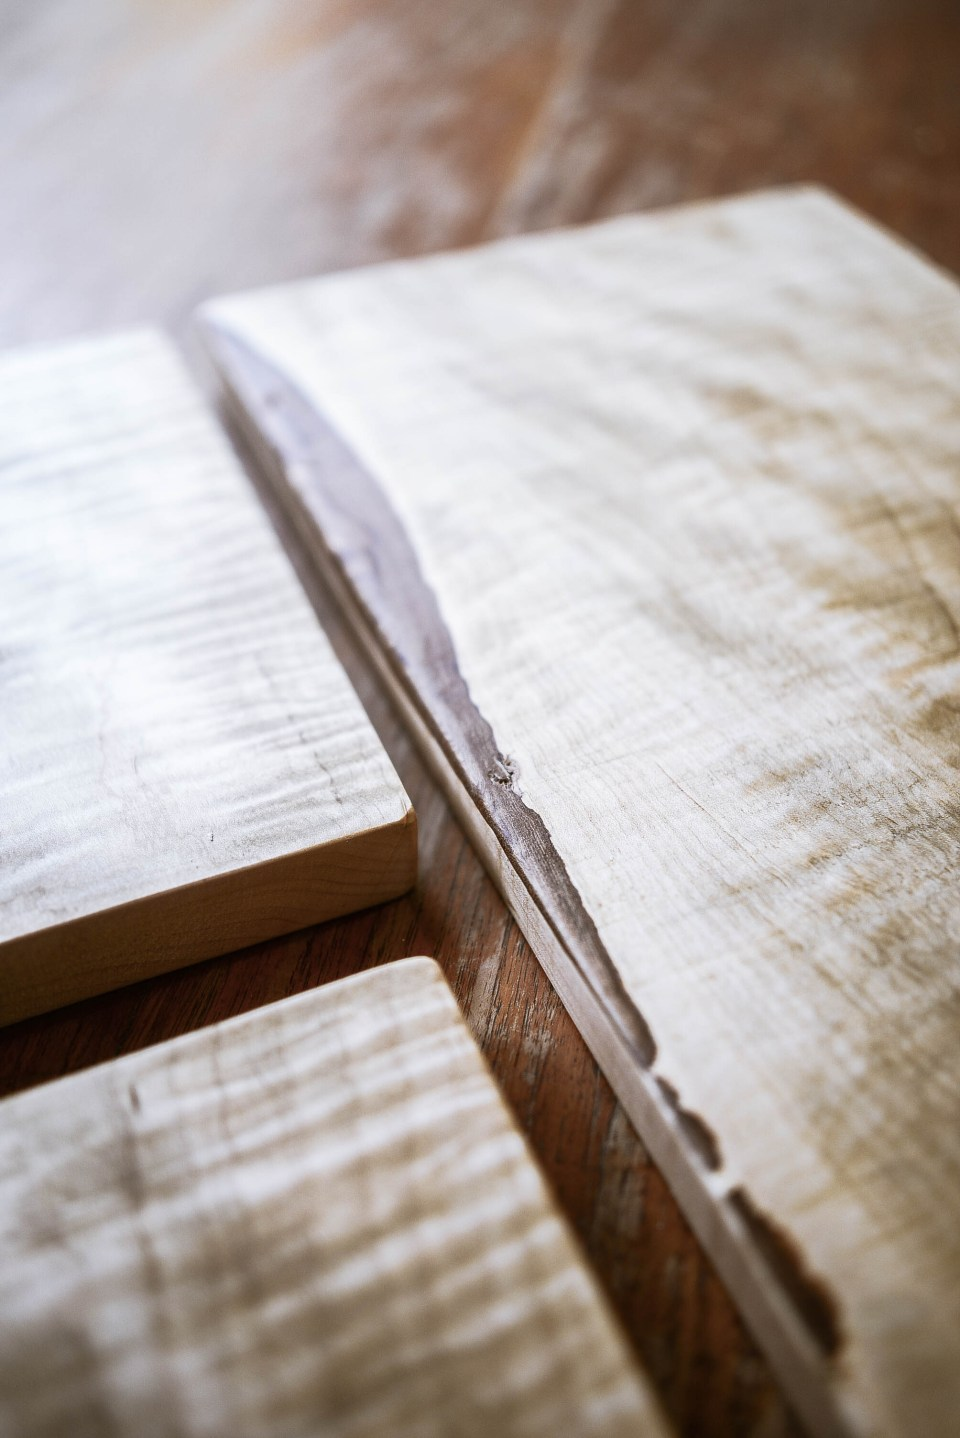 How to Make a cutting board - this DIY Cutting board is beautiful and functional. The perfect gift!